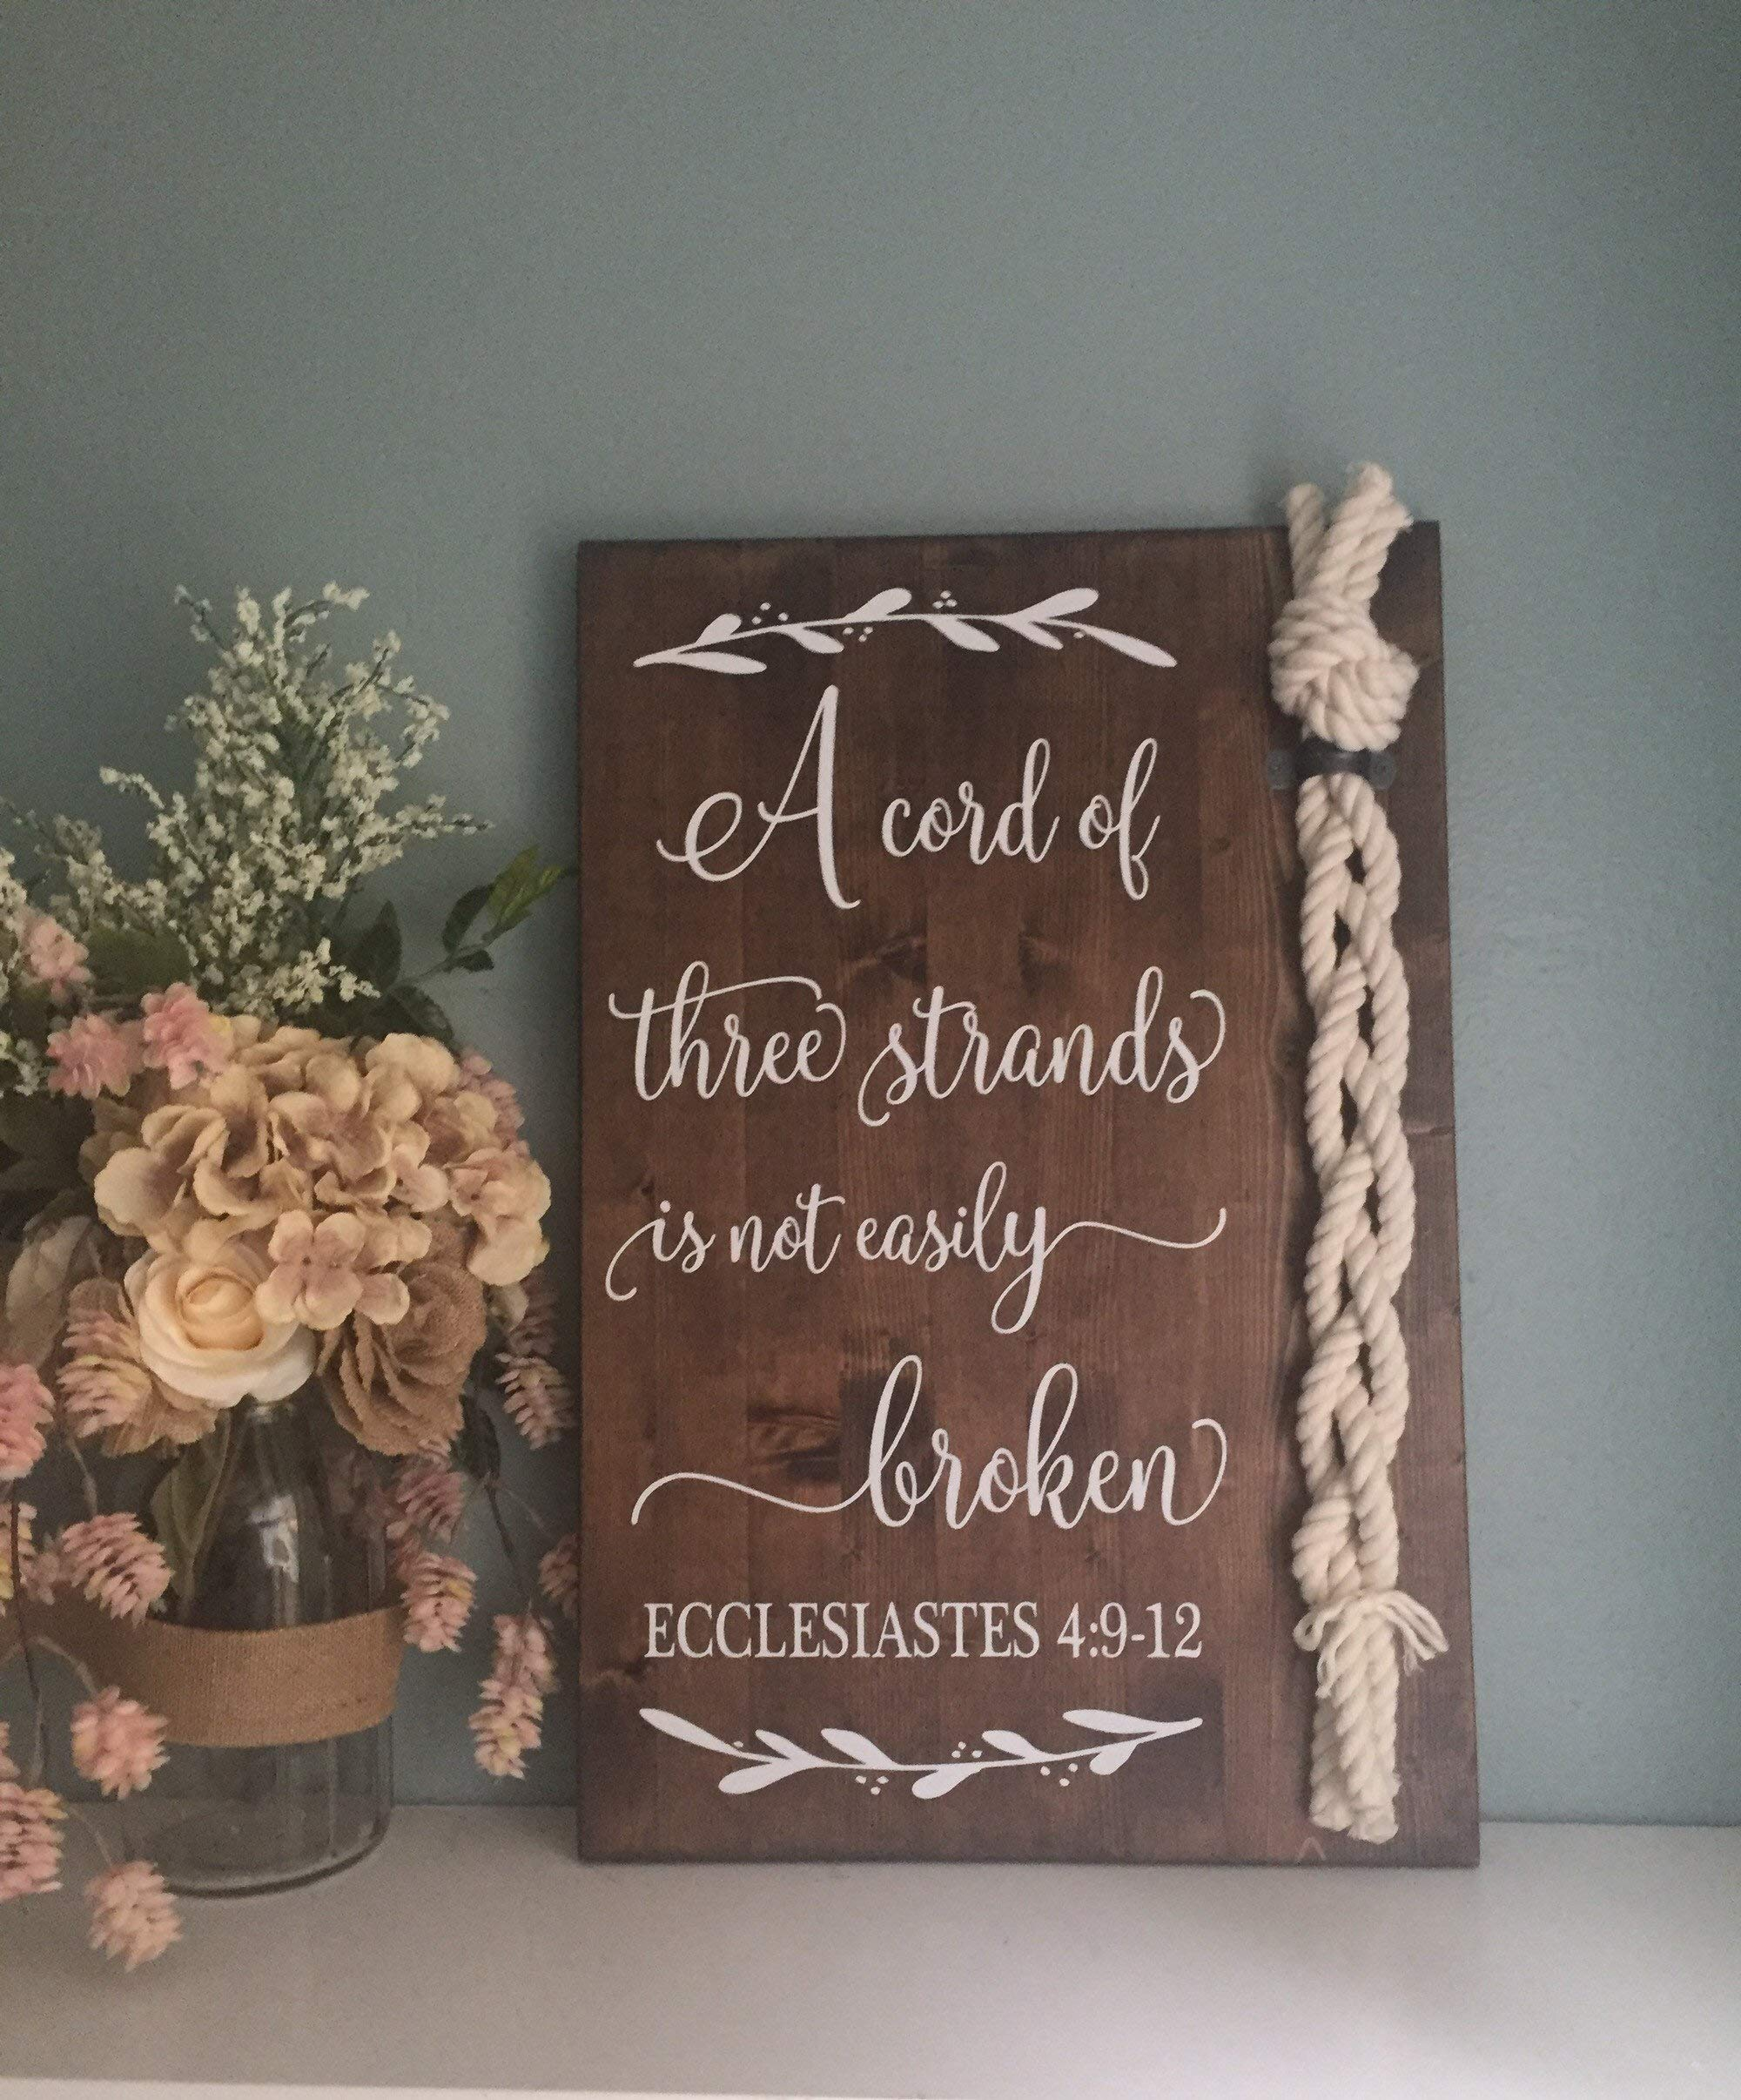 CELYCASY Cord of Three Strands Sign Ecclesiastes 4912 Alternative Unity Candle Unity Ceremony Sign Wedding Gift by CELYCASY